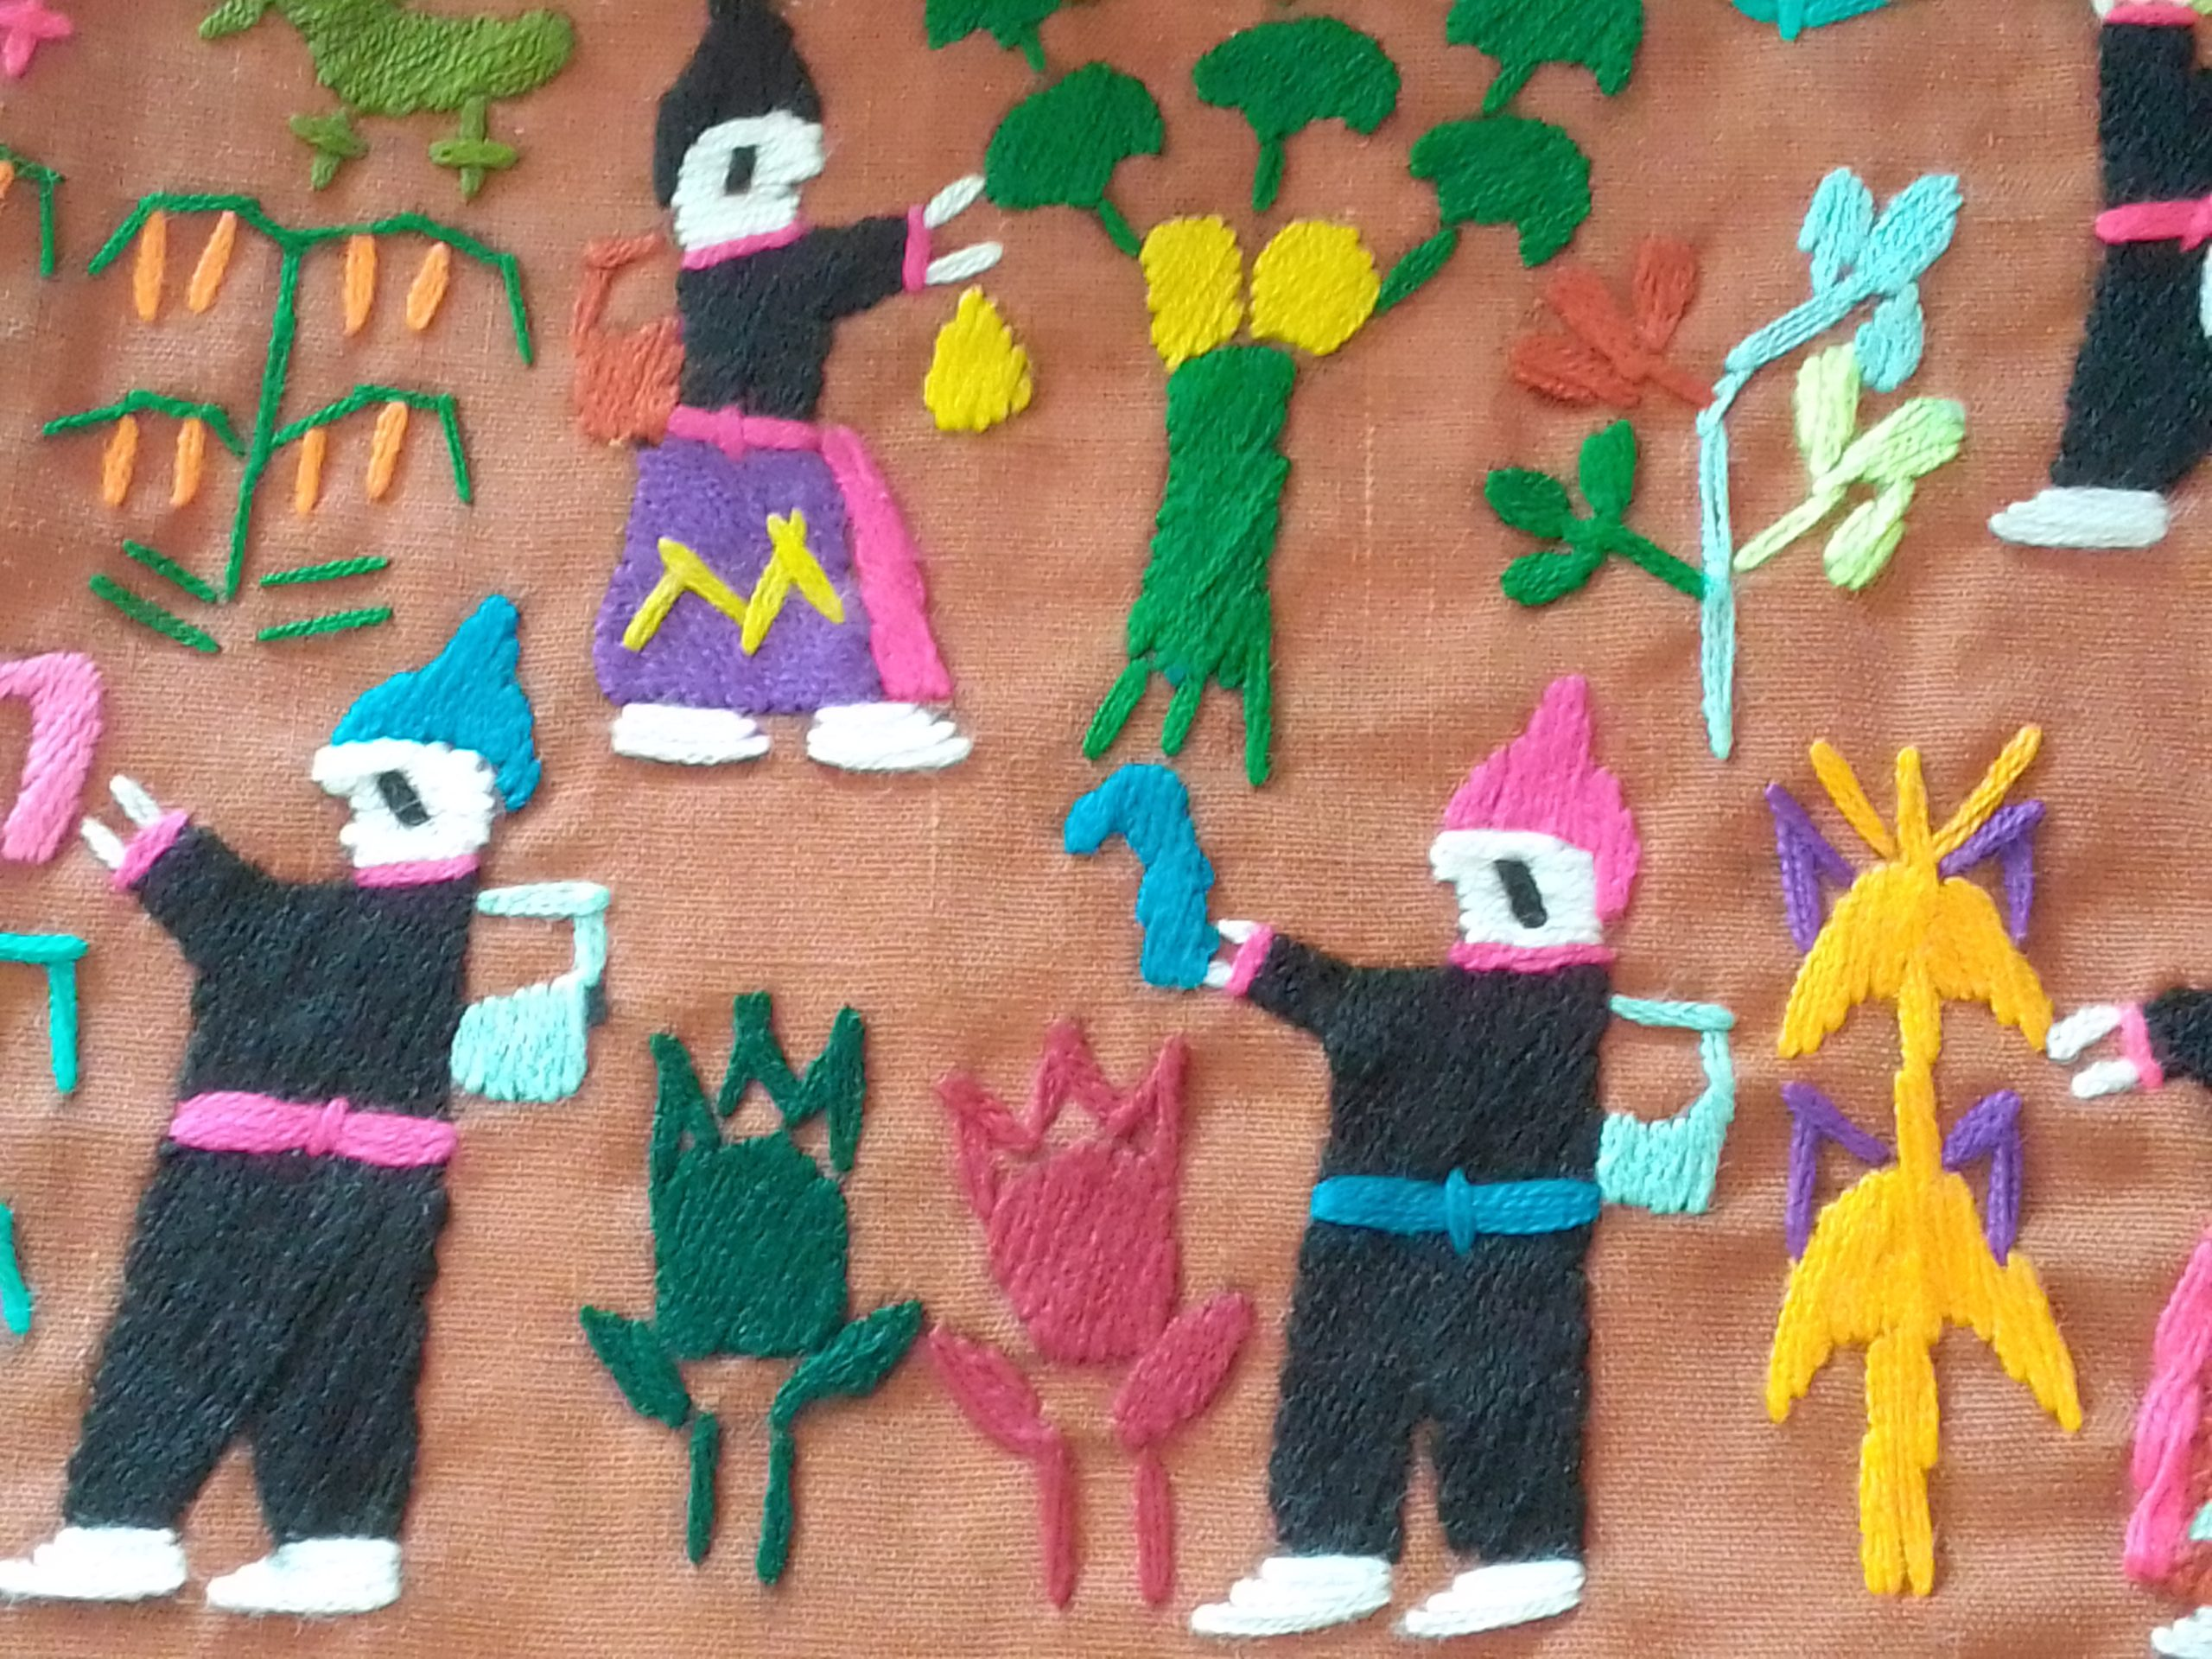 Story cloth style hand embroidery, Luang Prabang Deaf & Mute Community Training Centre